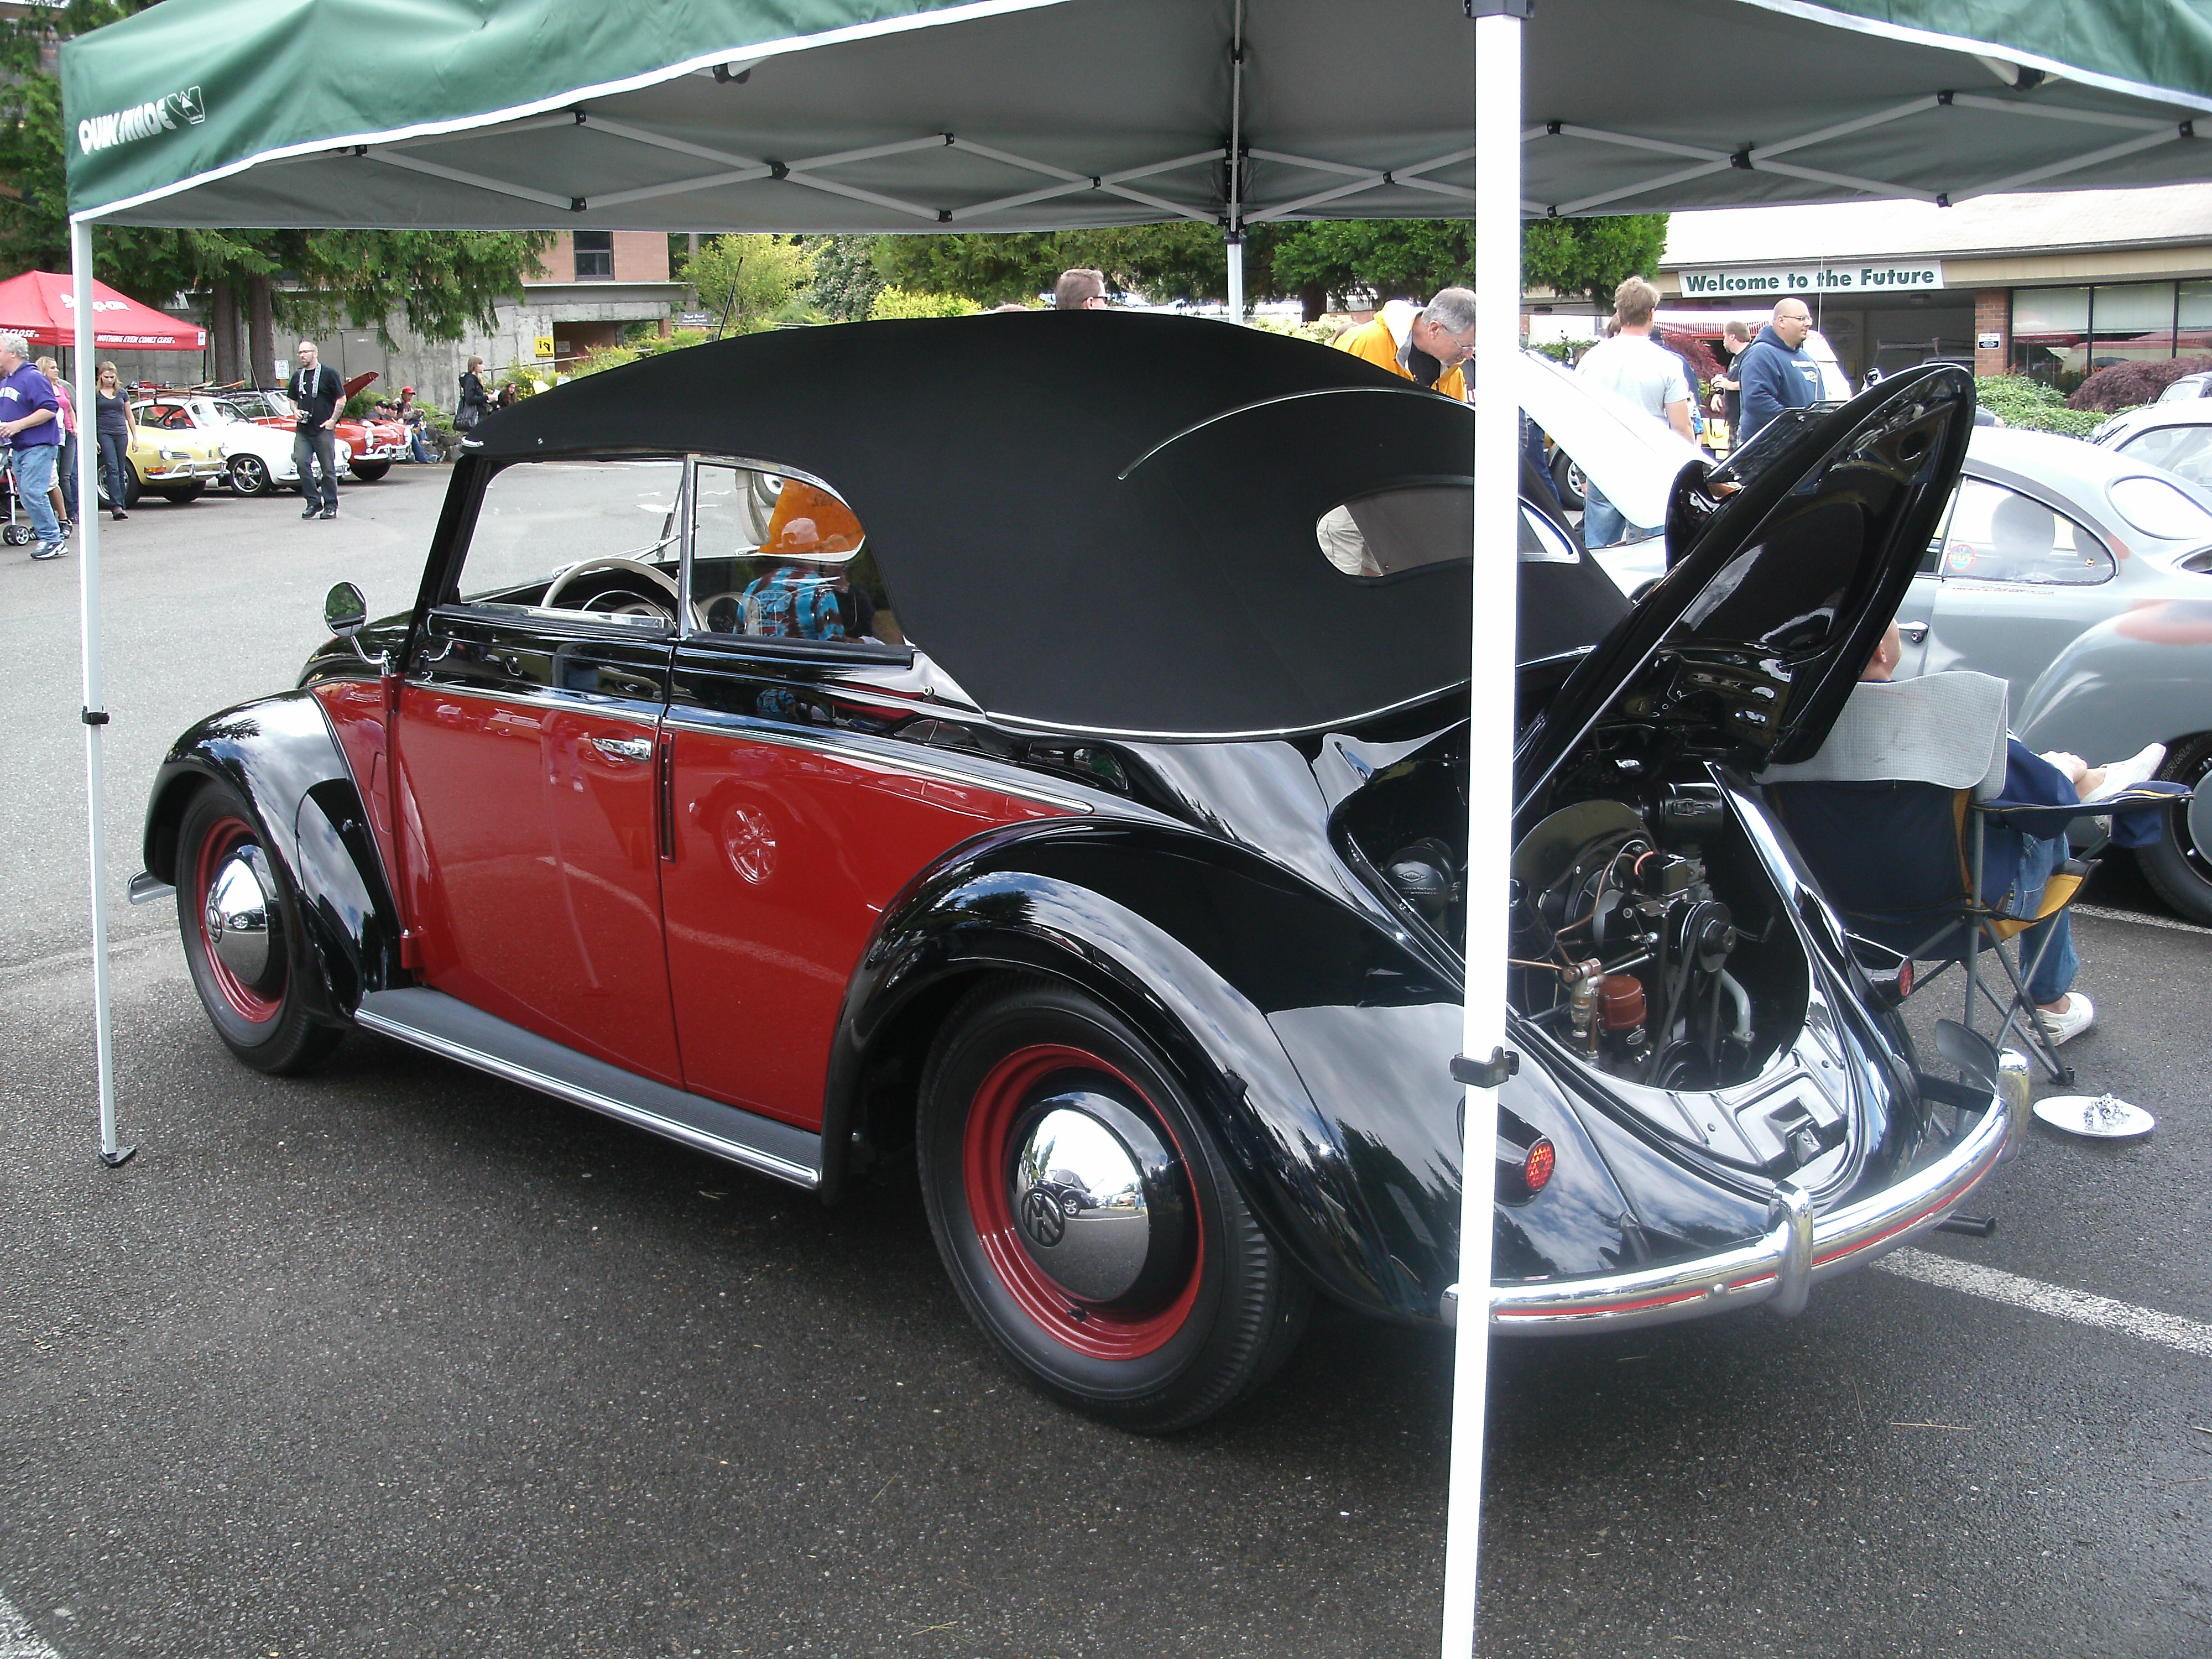 Dustin Howell's rare 1952 Volkswagen cabriolet was a restrained example of the air-cooled Beetle, save for a two-tone paint job that wasn't standard in '52.